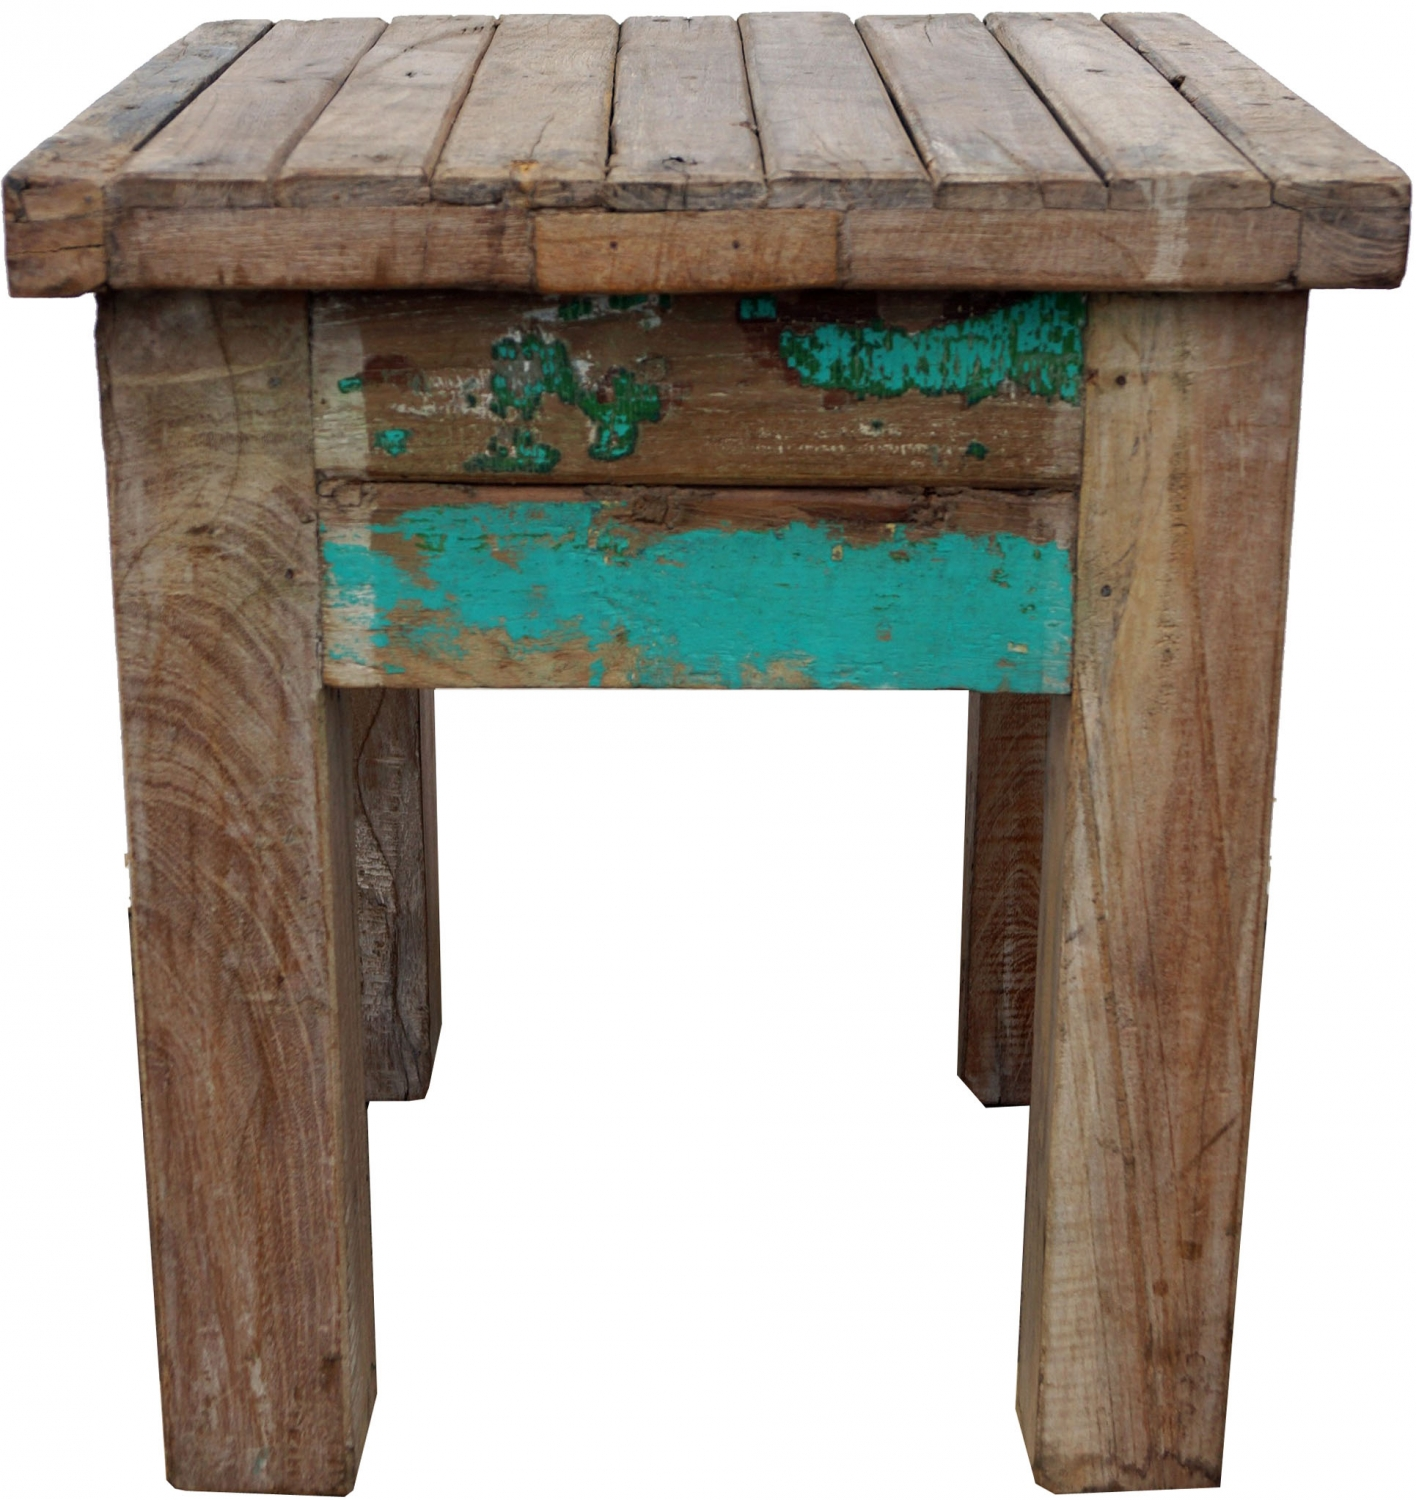 vintage coffee table coffee table made of recycled wood model 17 45x40x40 cm